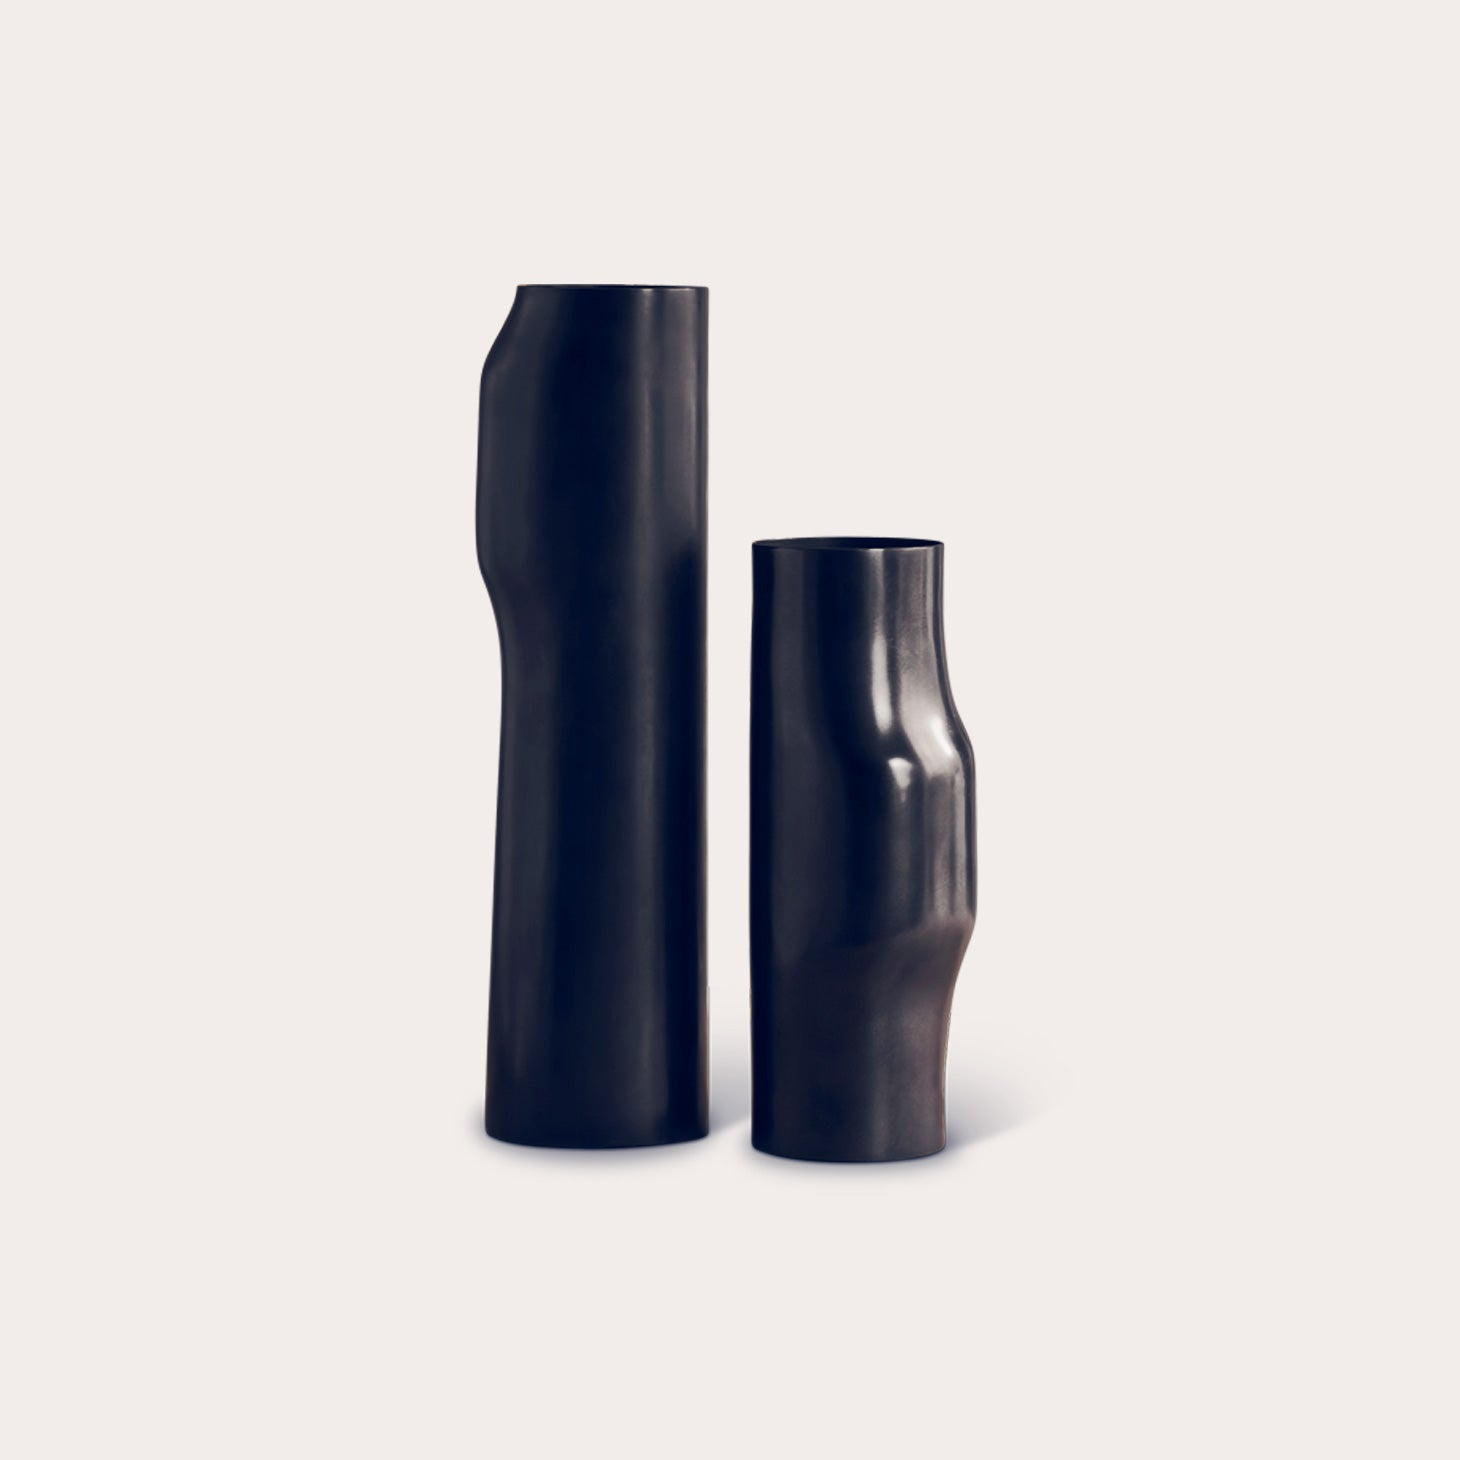 BOS Vase Accessories Christophe Delcourt Designer Furniture Sku: 765-100-10058